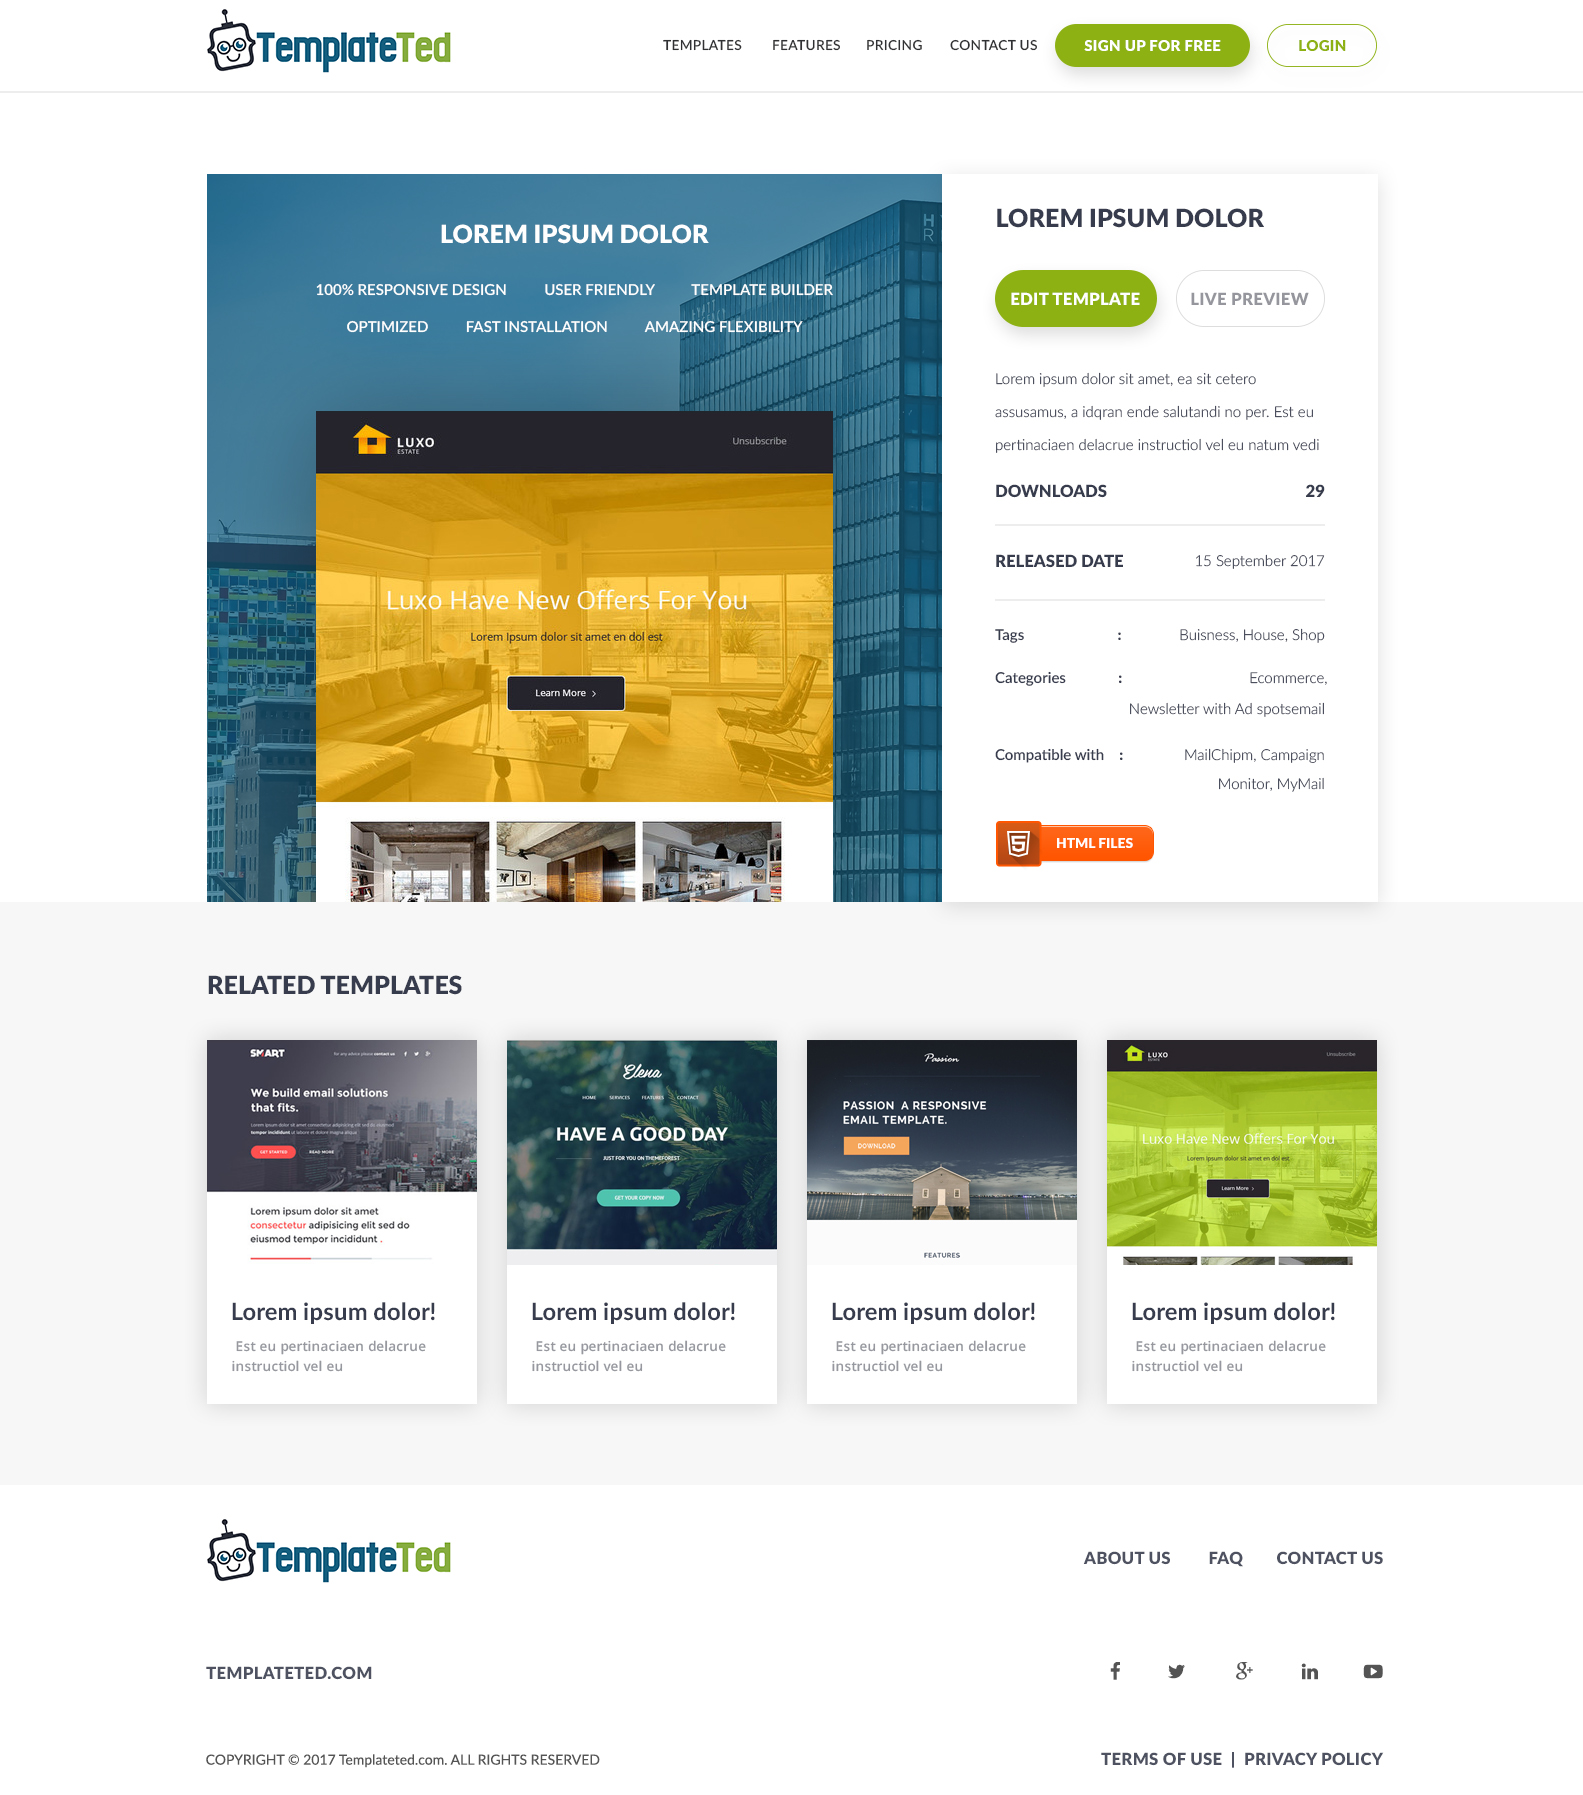 Designs for email templates service - SaaS project - Web-Design - Merehead Development